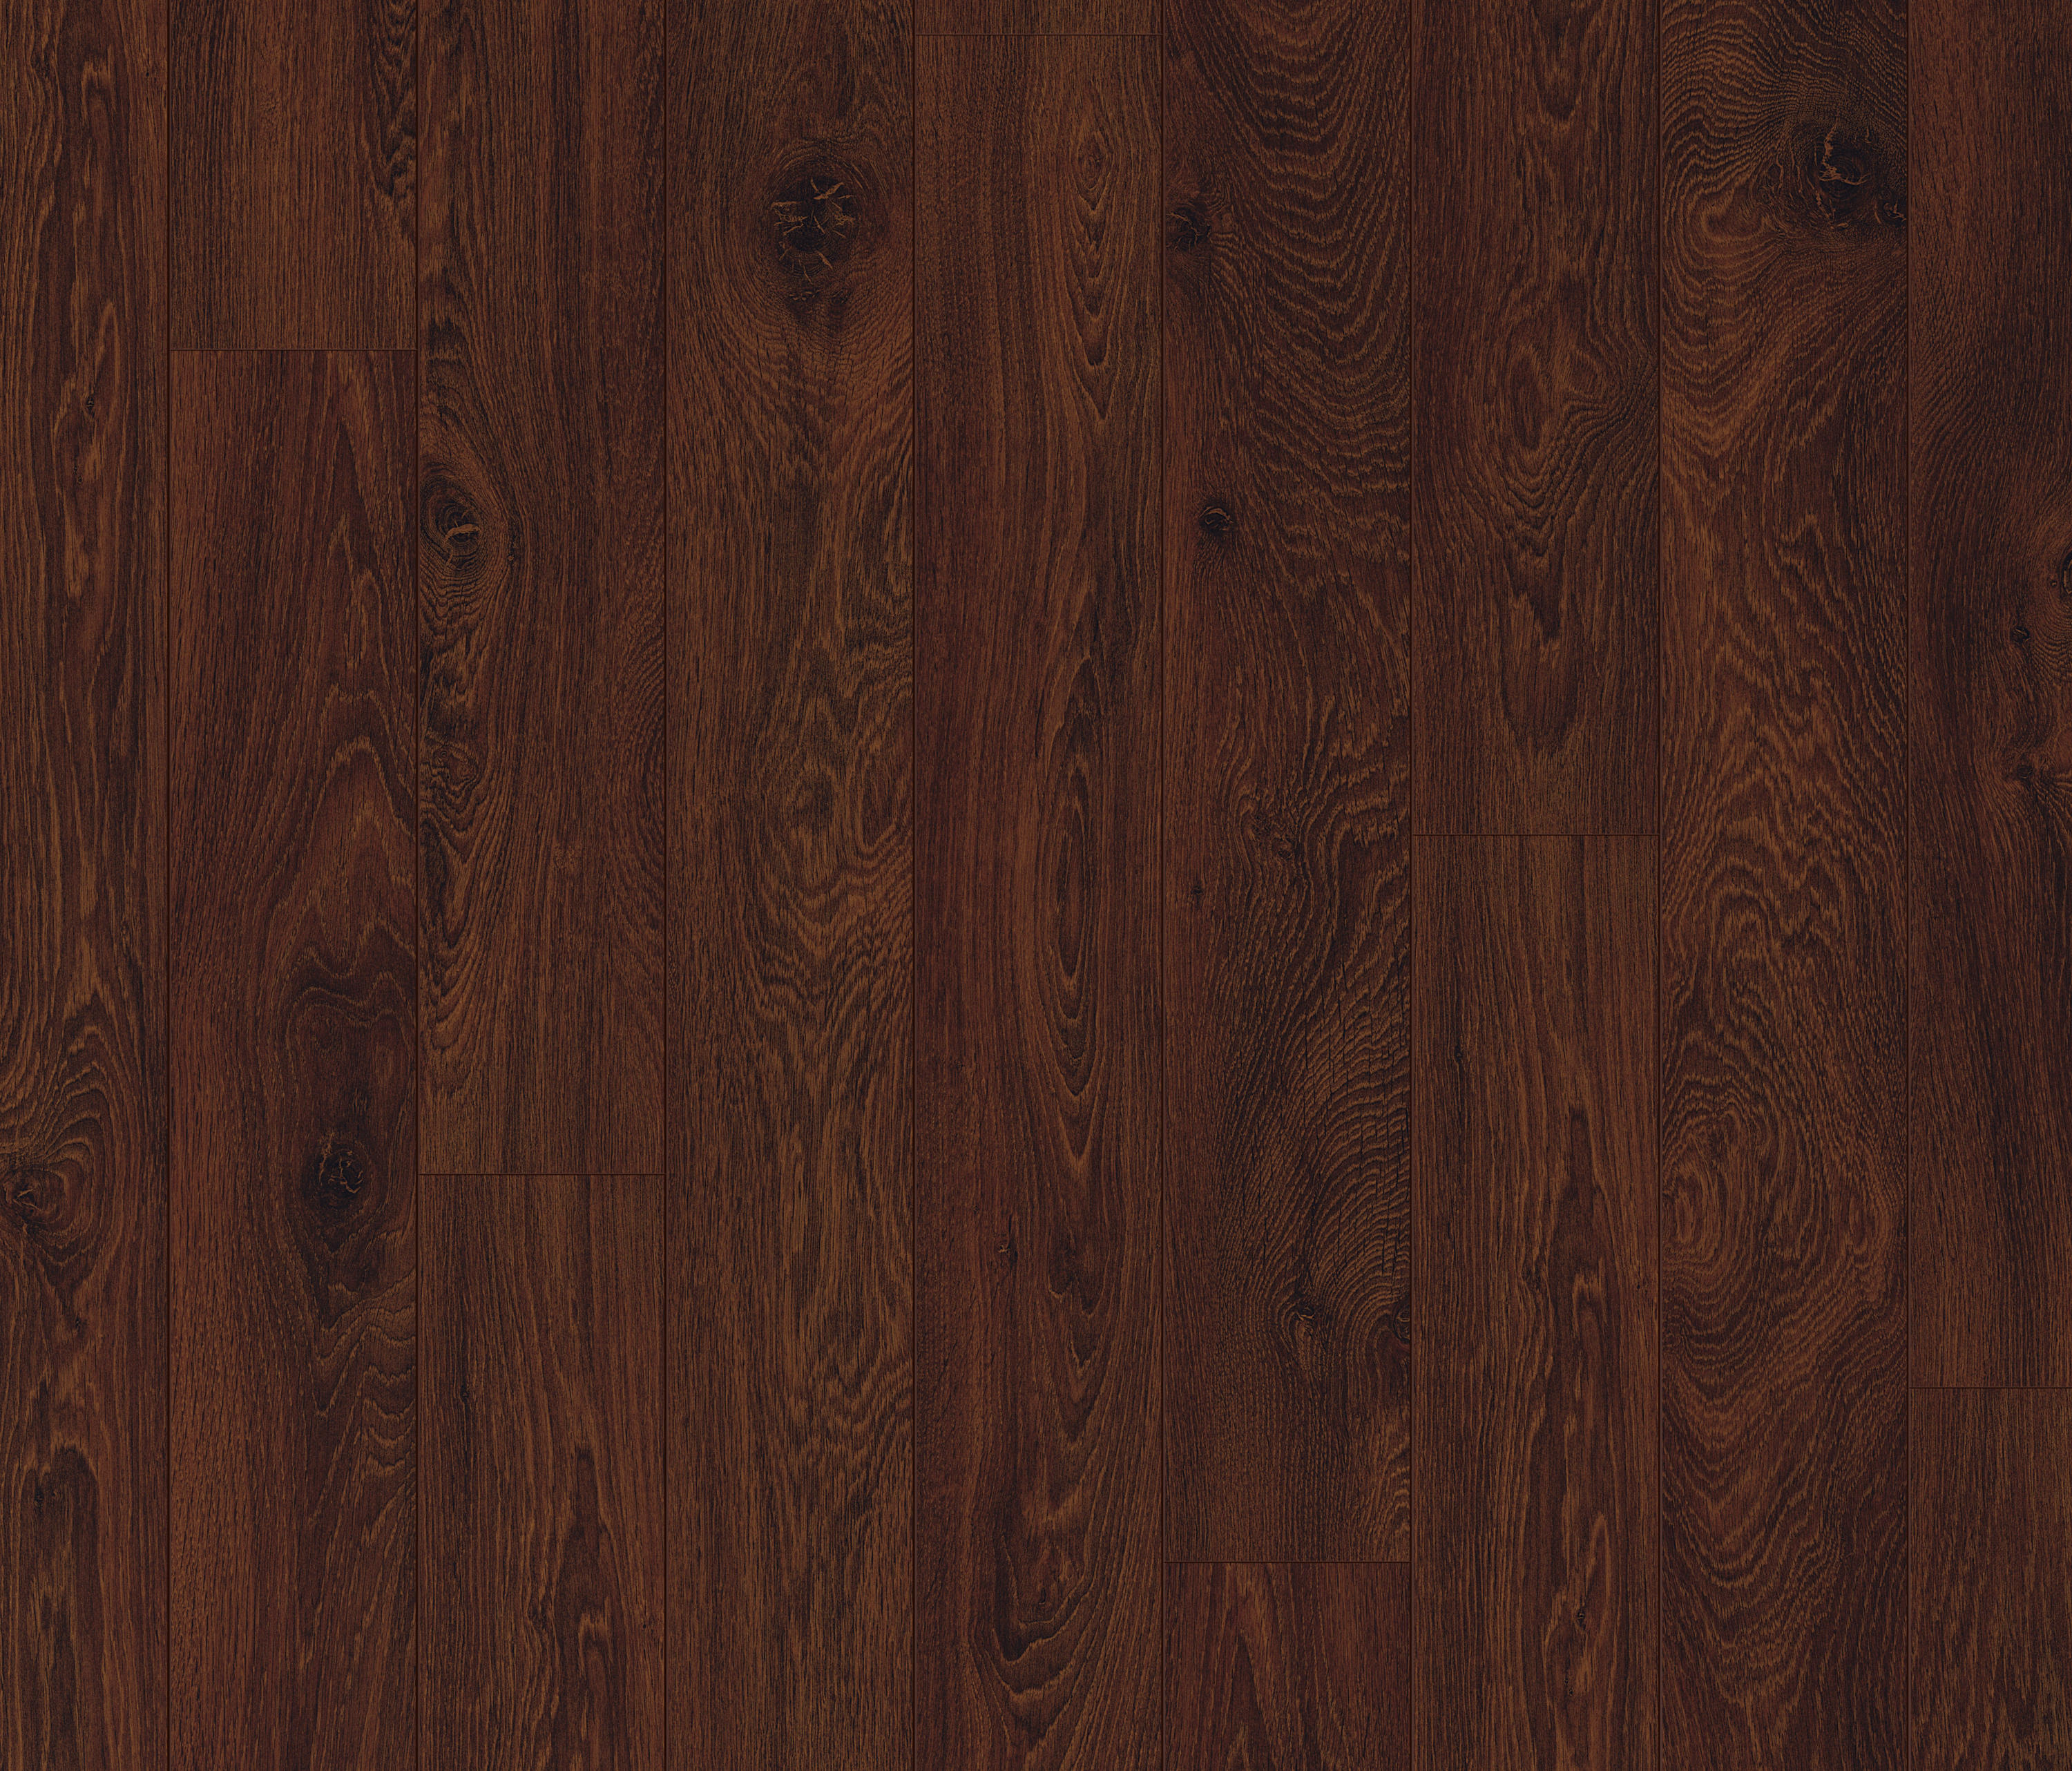 Plank Ebony Oak By Pergo Laminate Flooring